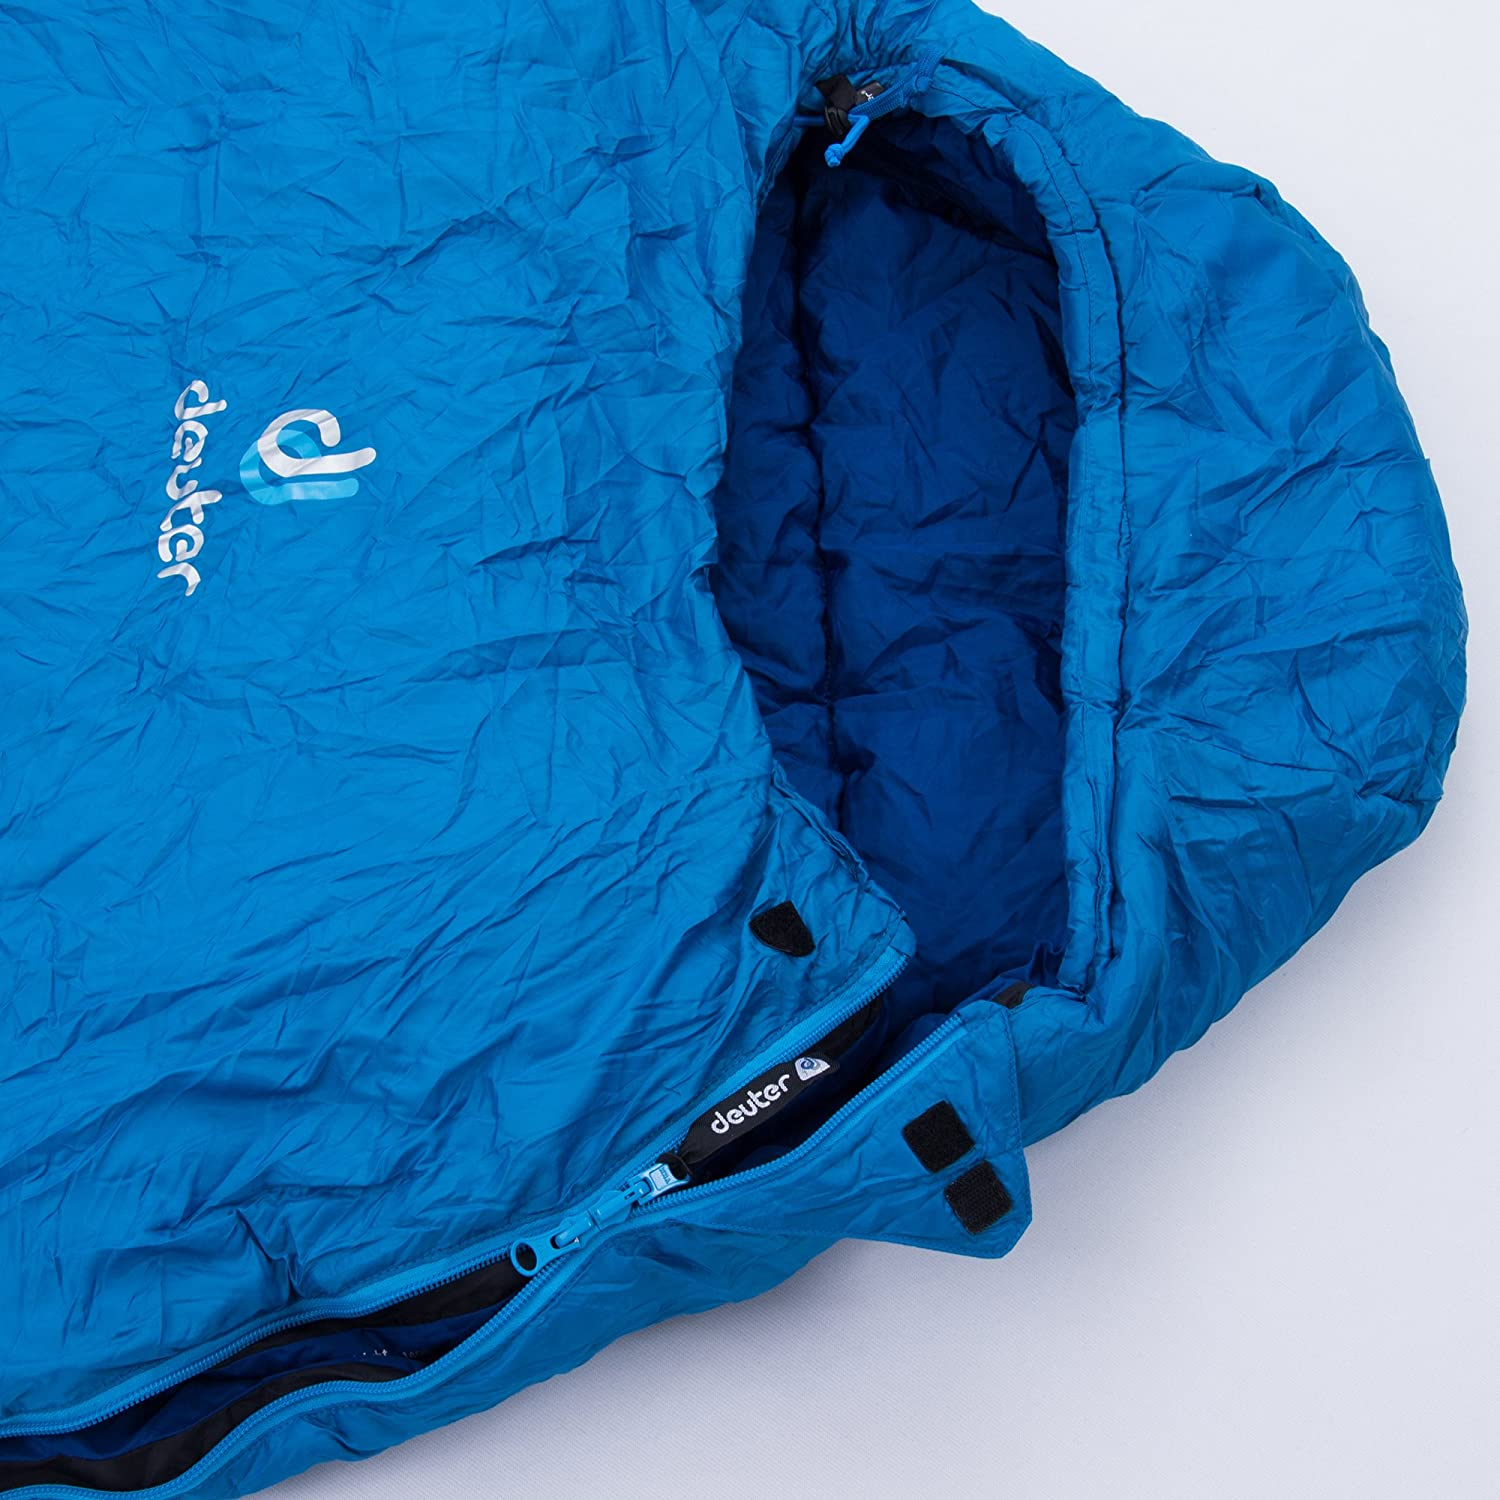 Deuter Orbit 0° - Saco de Dormir, Unisex Adulto, Azul(Bay-Steel): Amazon.es: Deportes y aire libre